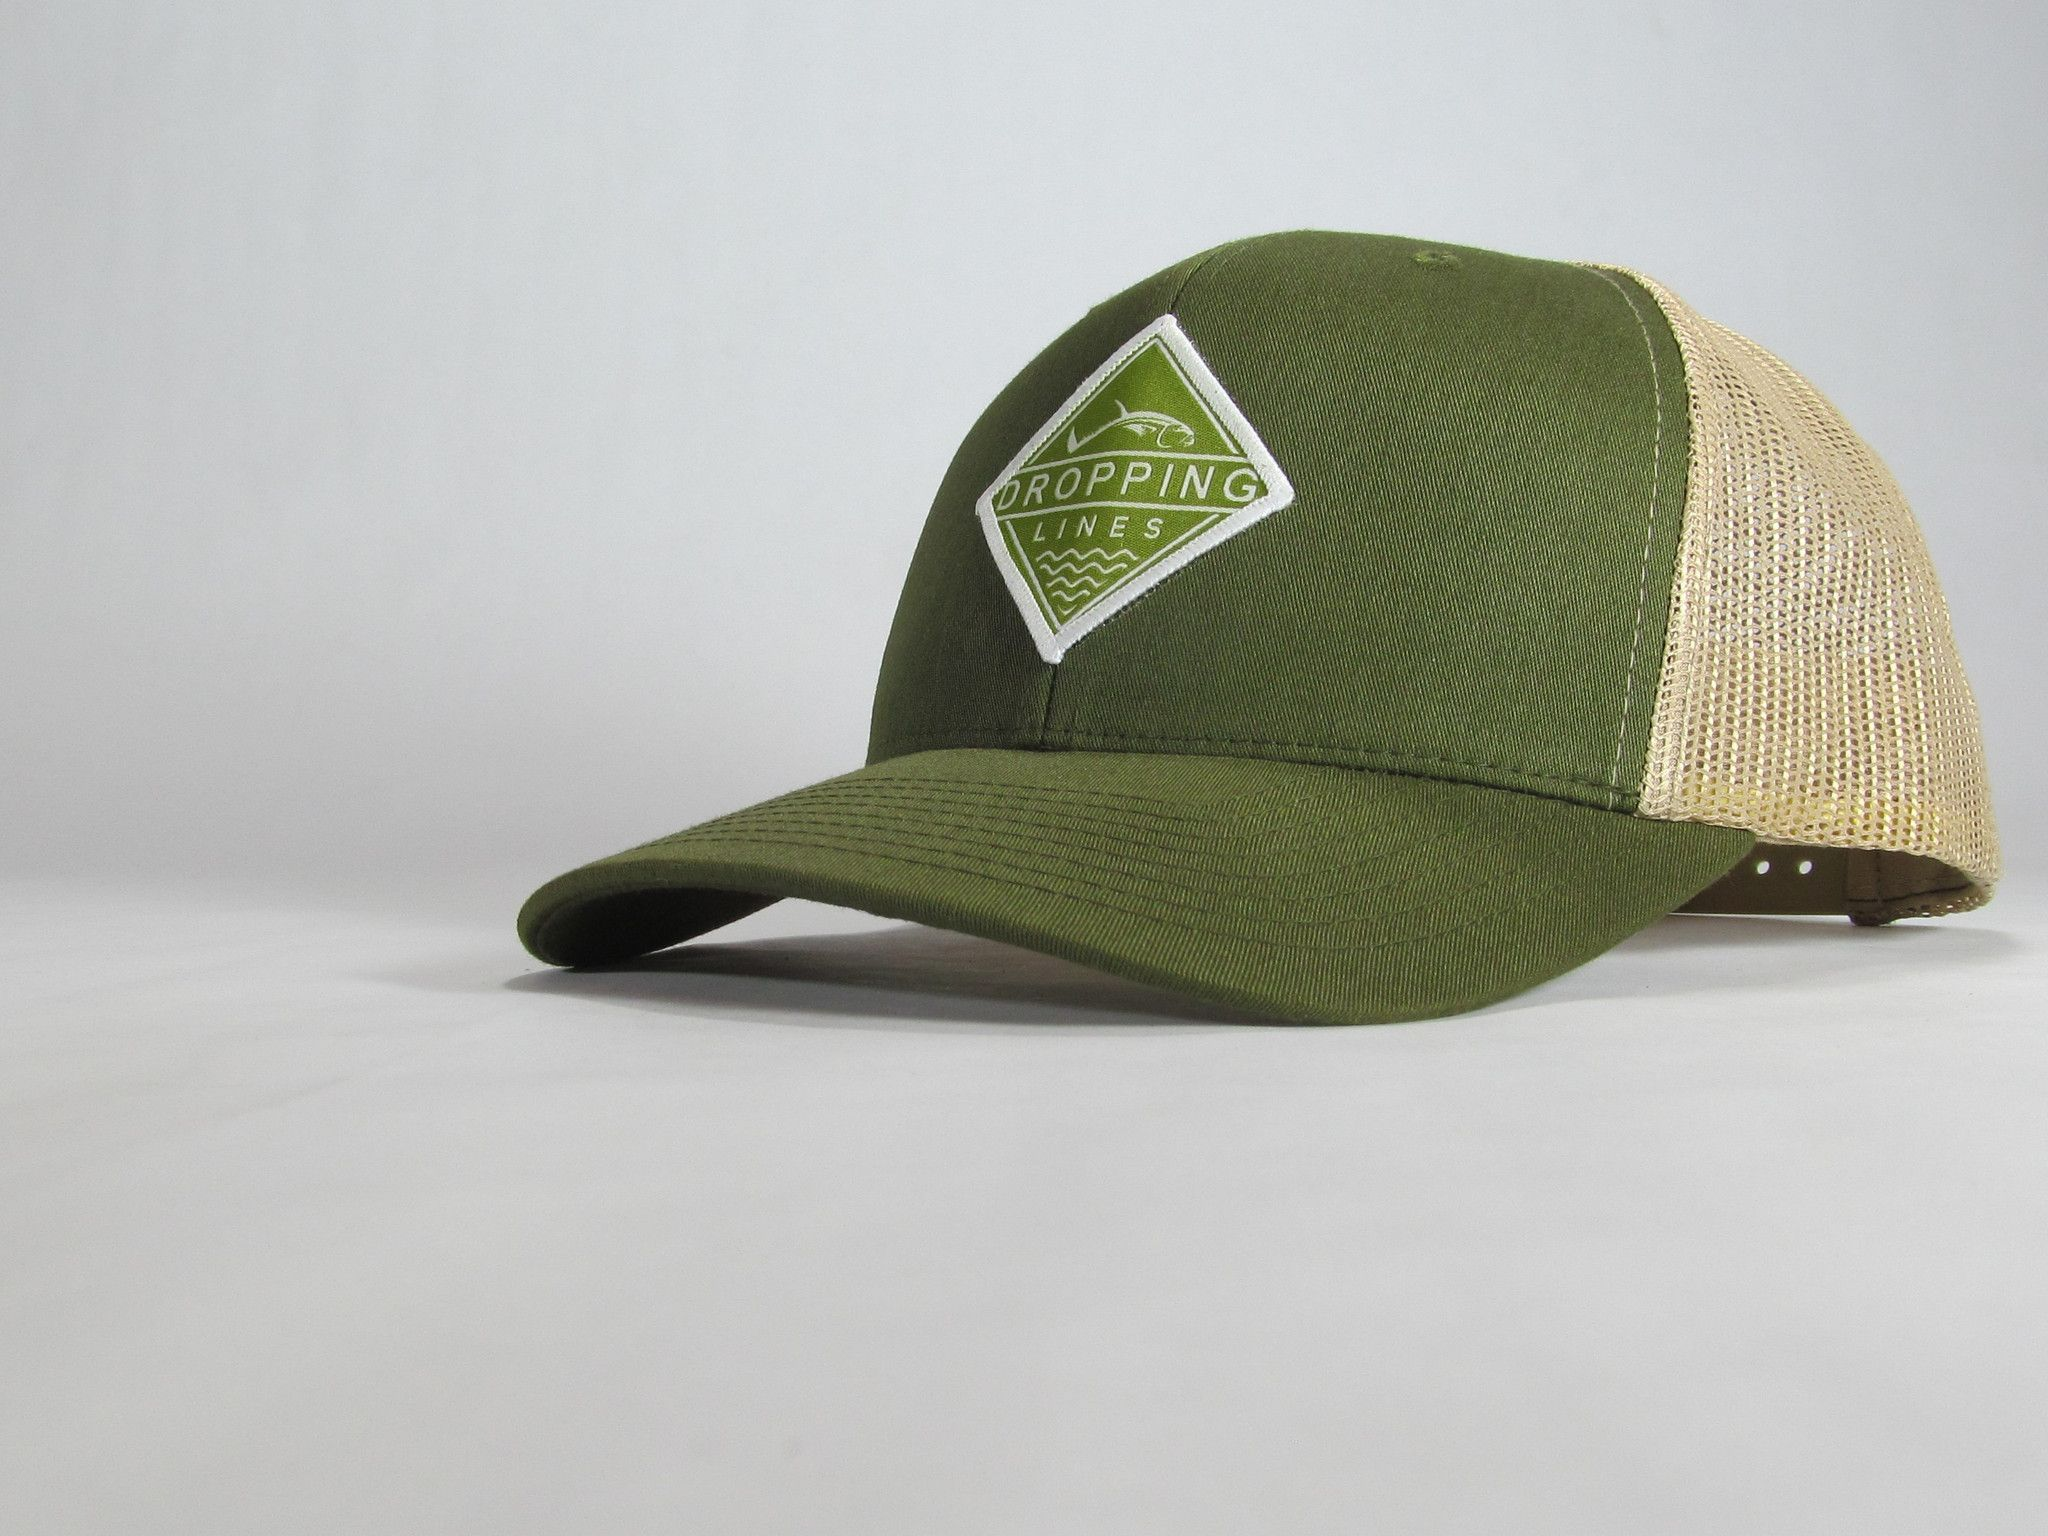 Dropping Lines - Green/Brown - Hat